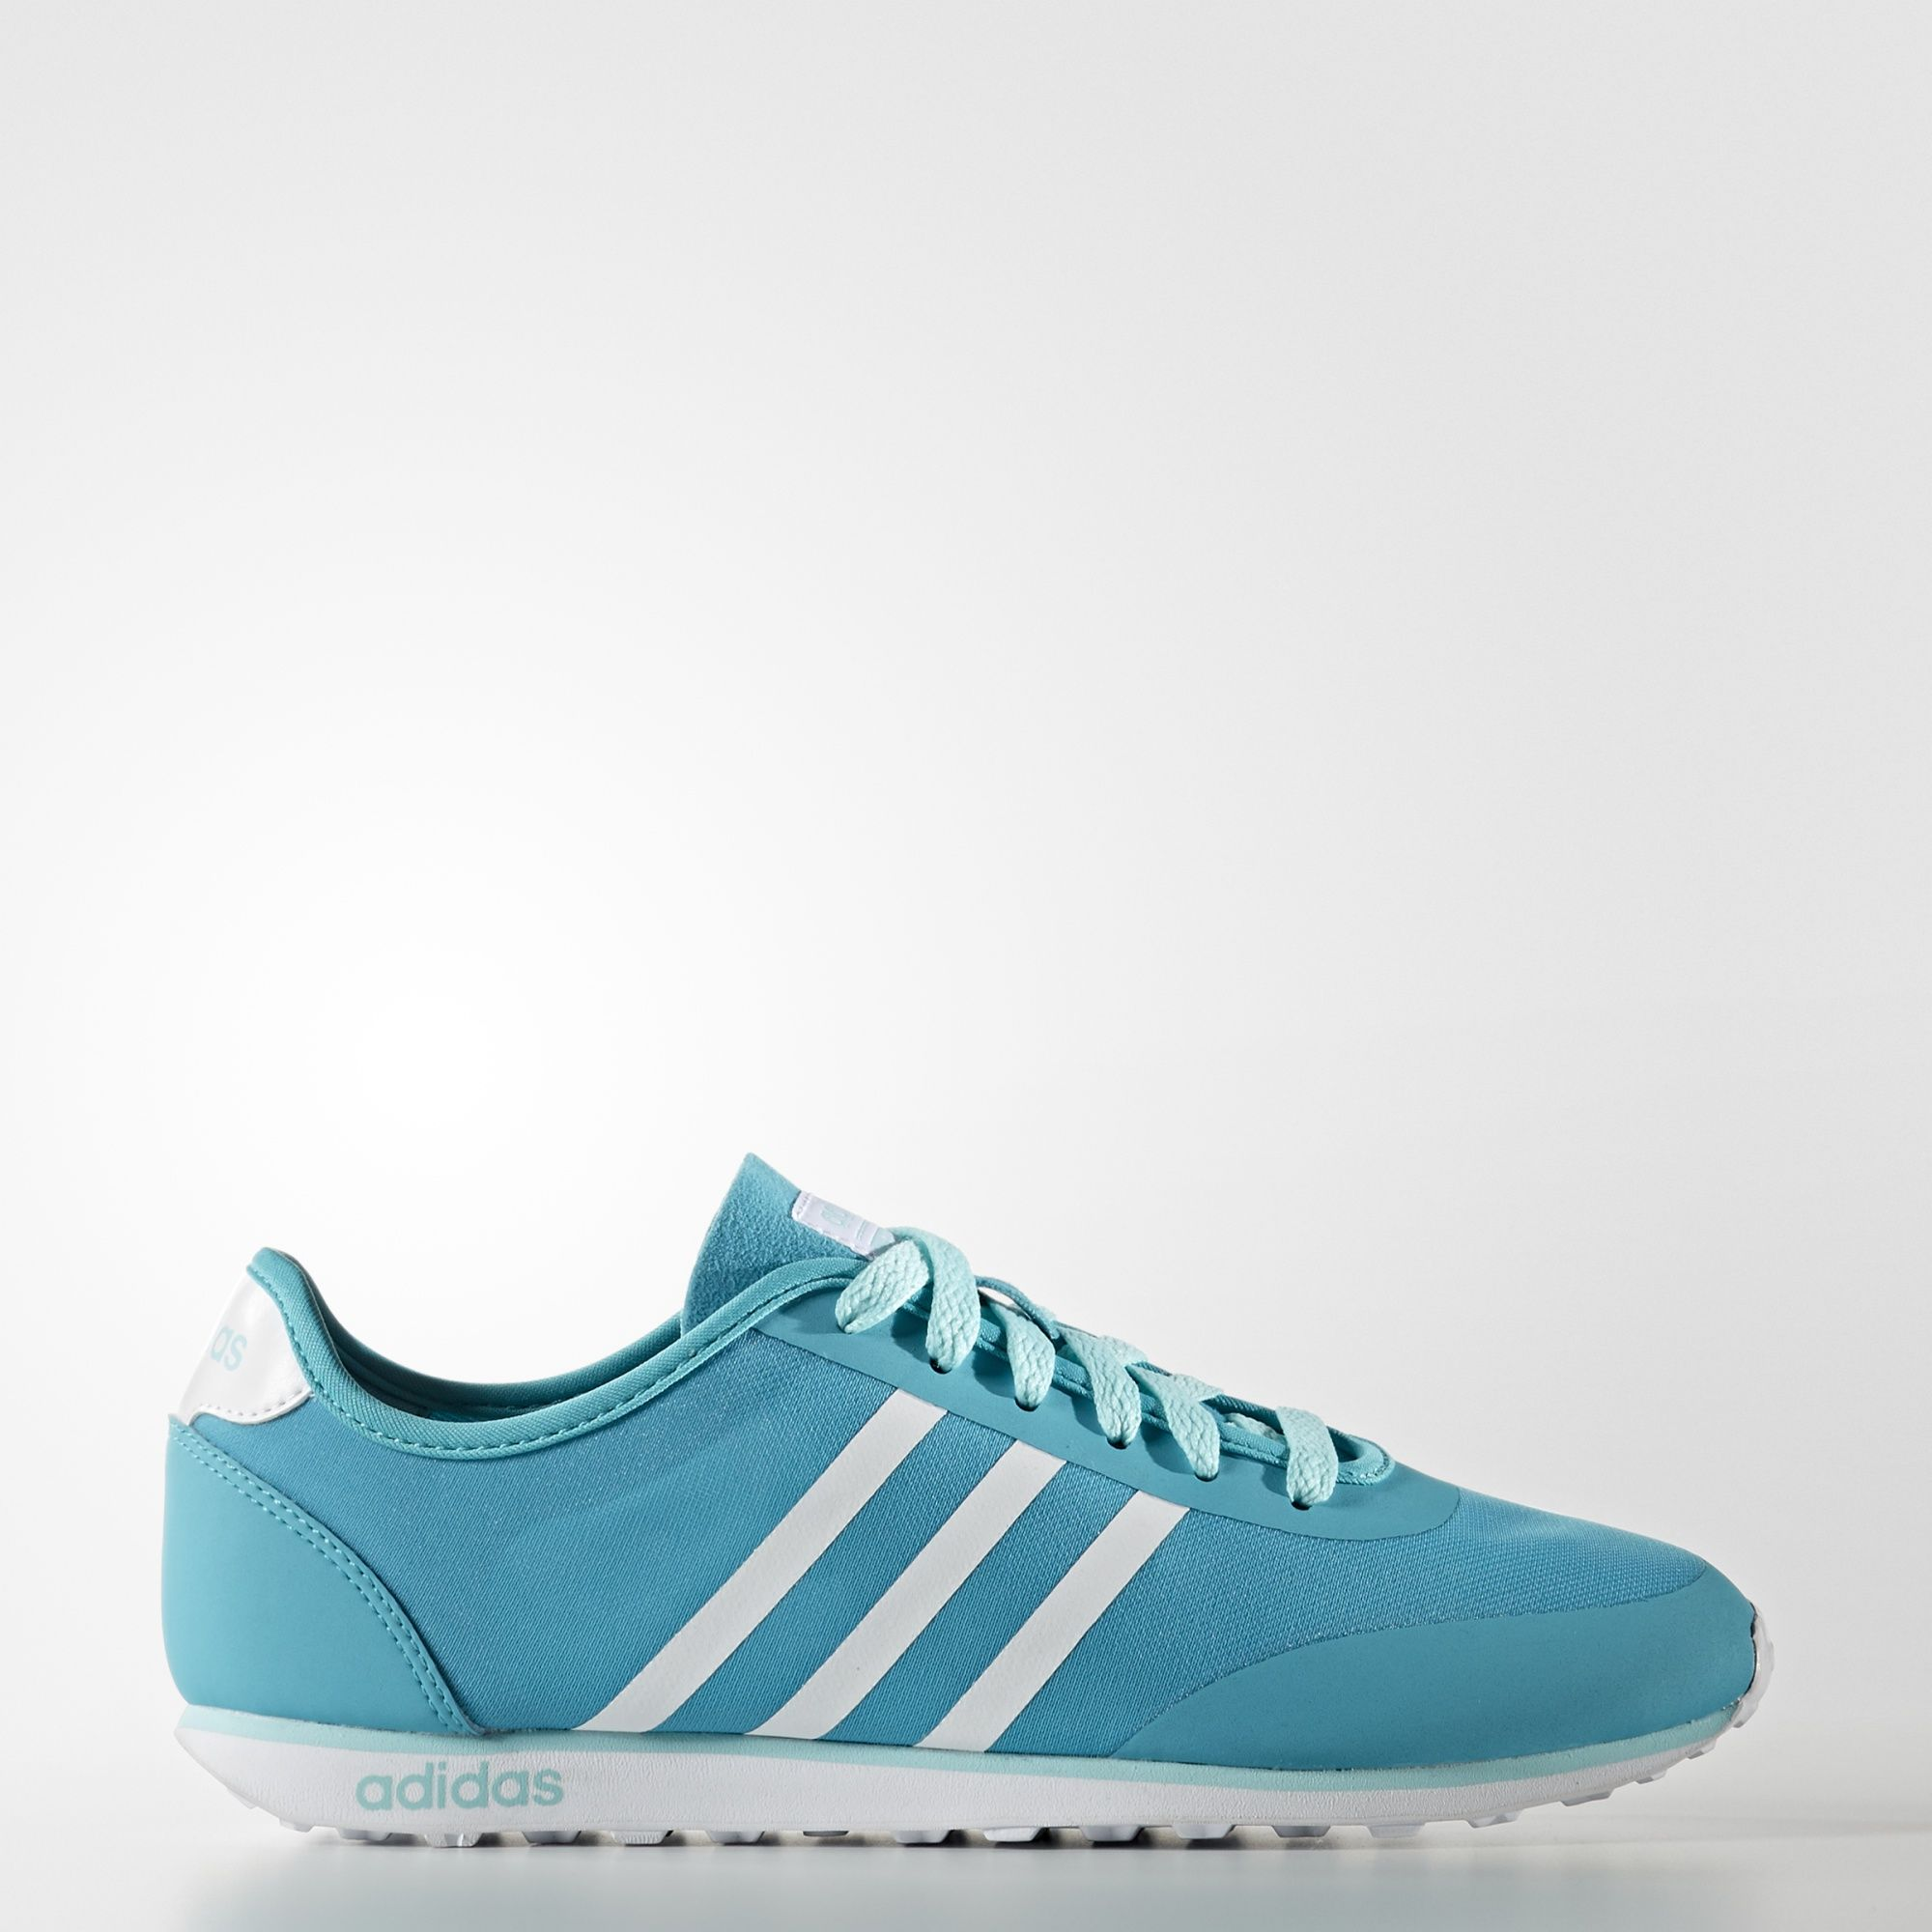 adidas neo footbed femme